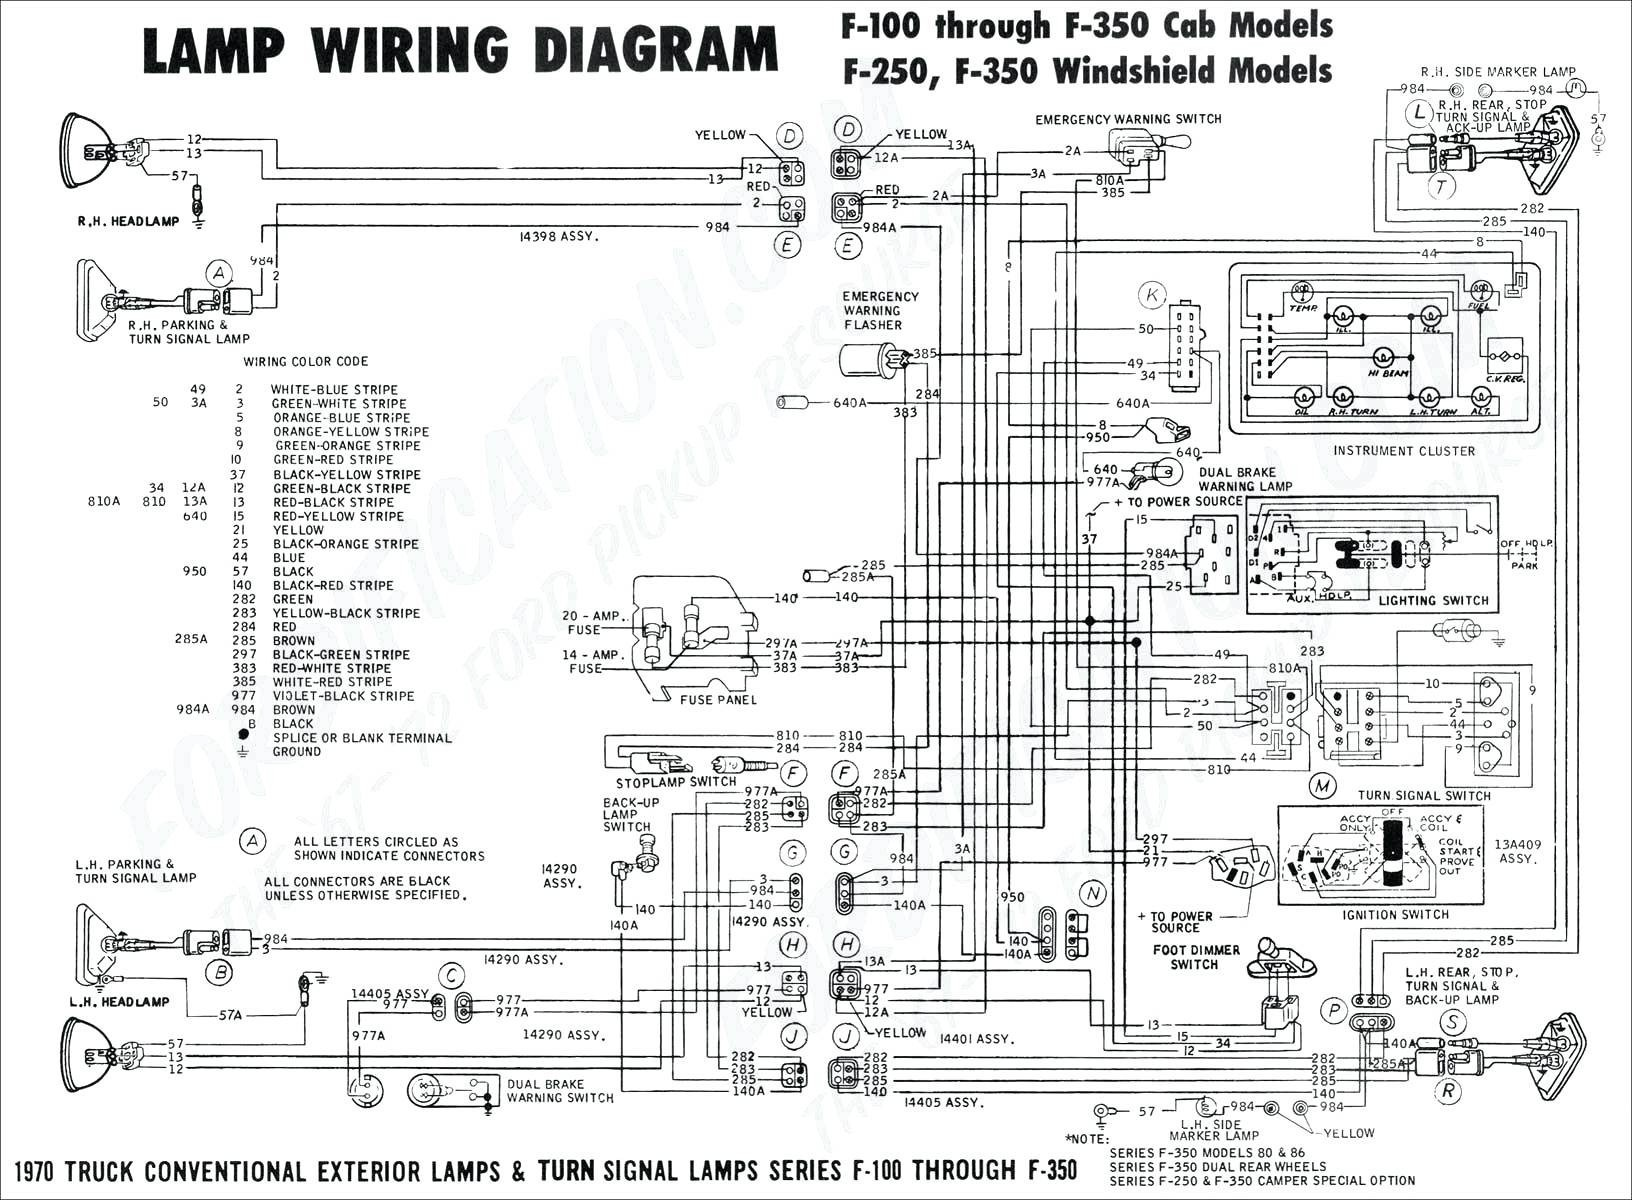 Ford 4 0 sohc Engine Diagram 2 1962 ford F 250 Circuit Diagram Worksheet and Wiring Diagram • Of Ford 4 0 sohc Engine Diagram 2